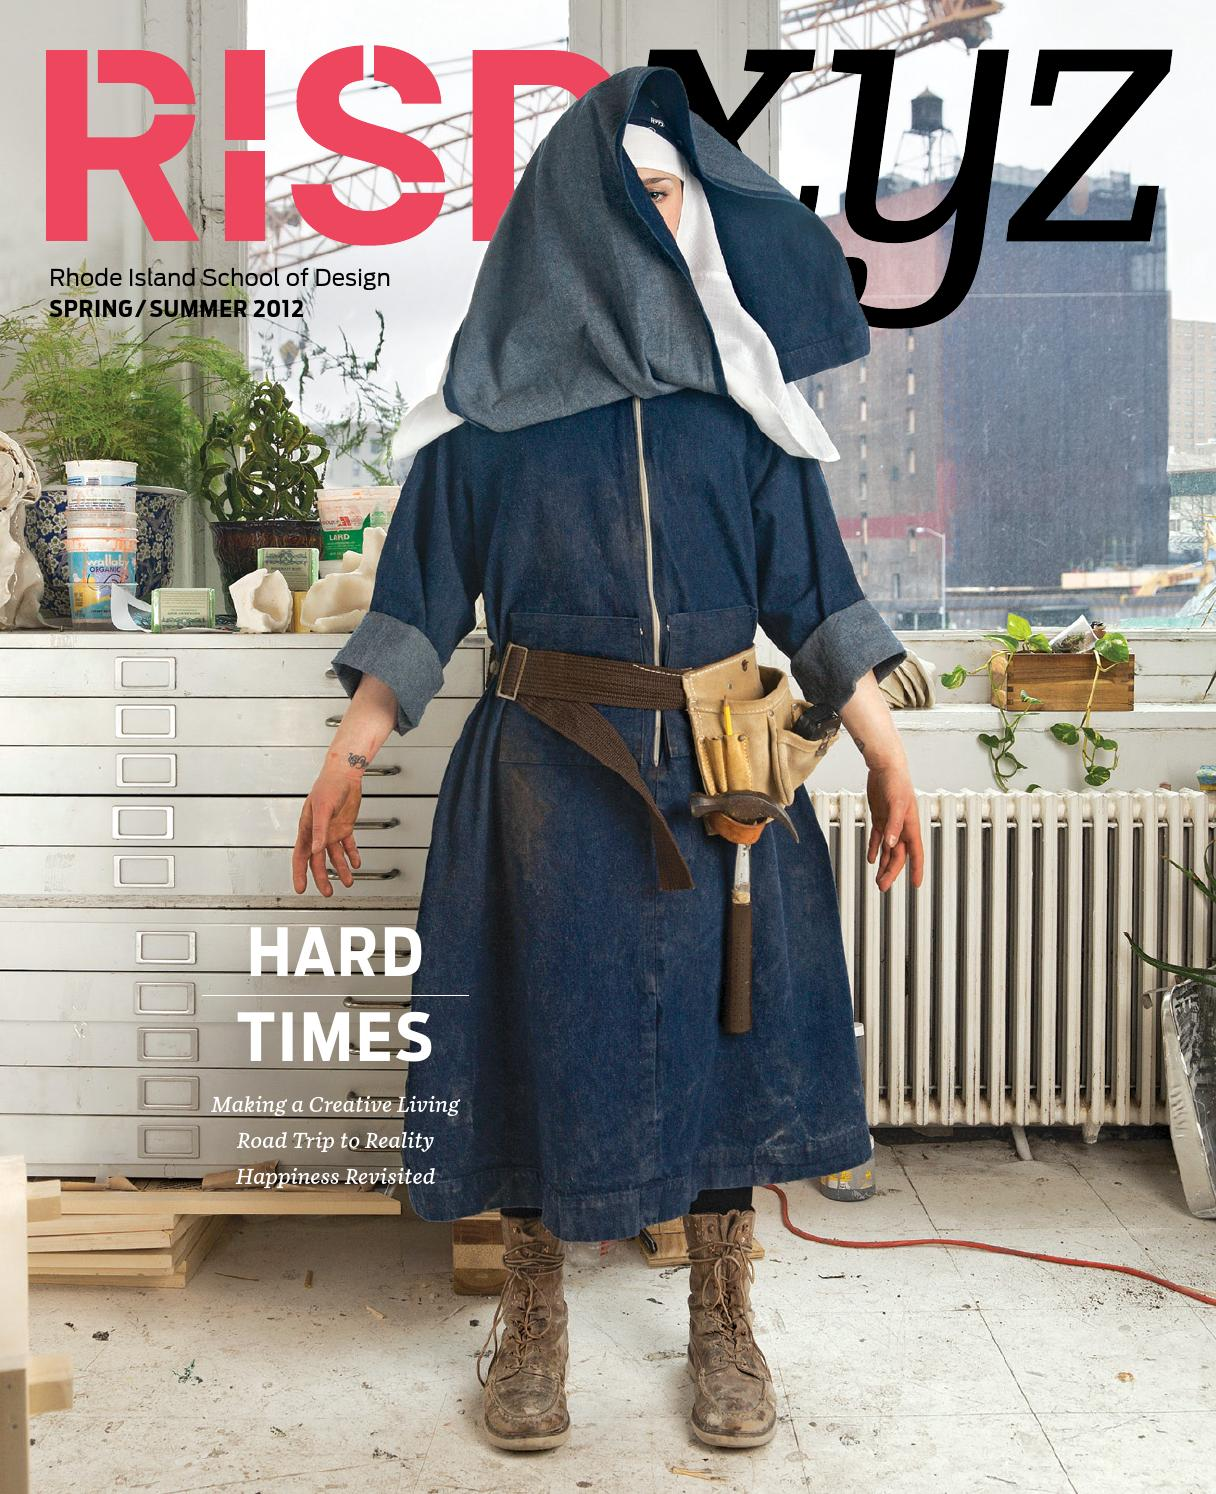 risd winter by rhode island school of design issuu